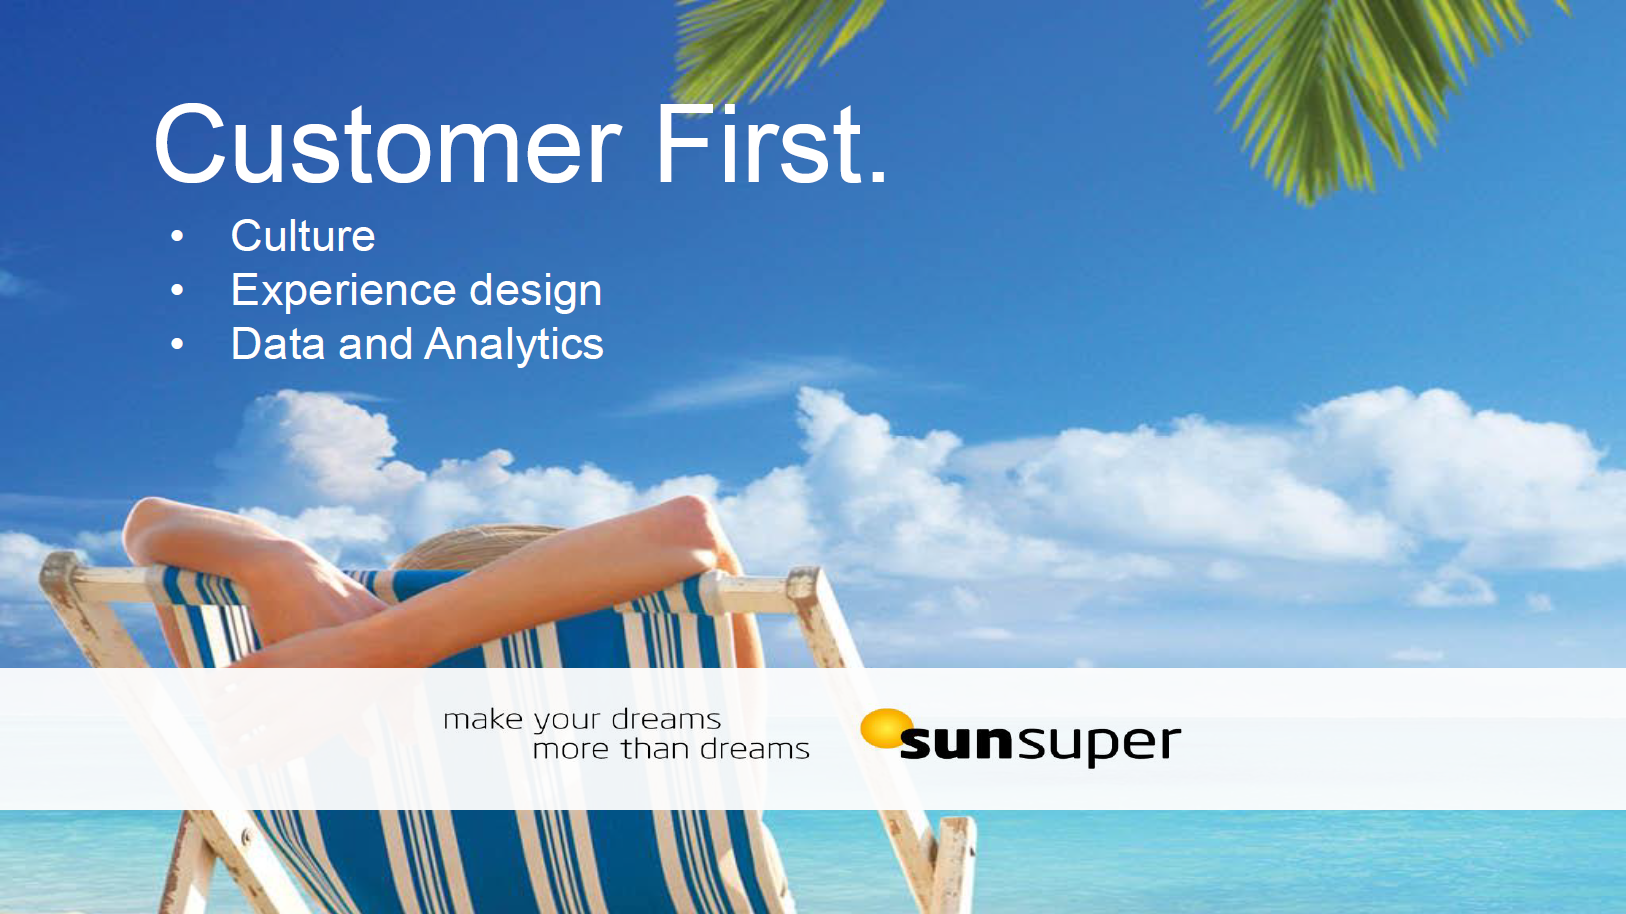 Customer First - Customer first culture, Customer led experience design and Data driven decision making